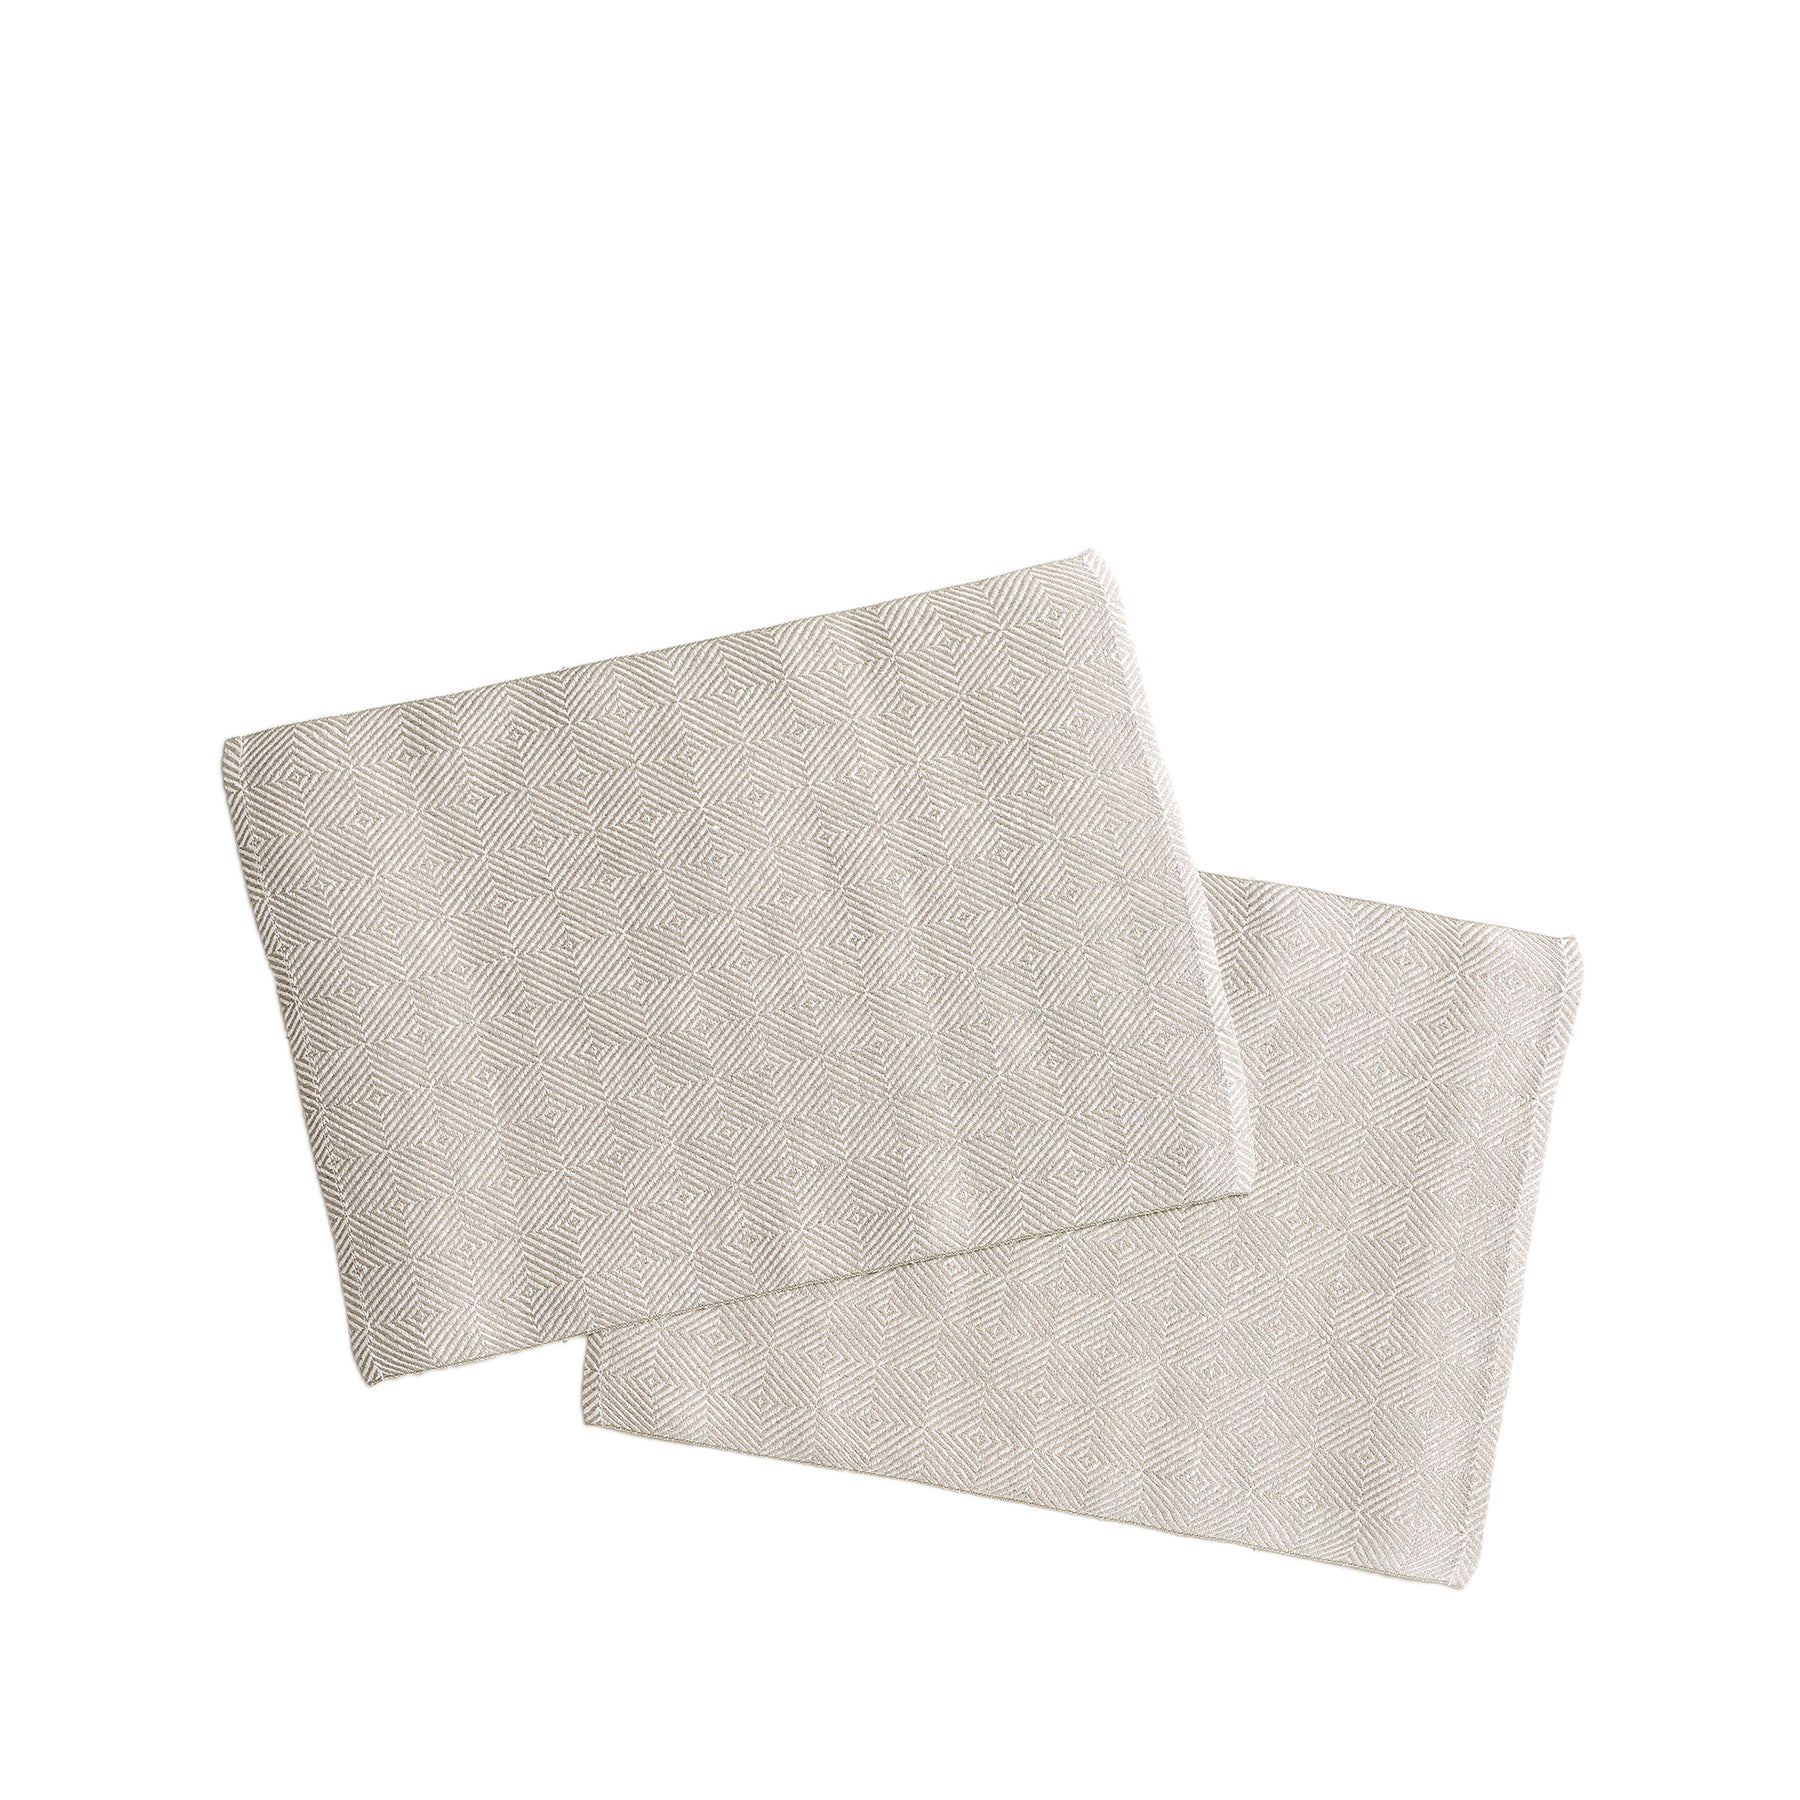 Linen Rutig Strandrag Placemats in White (Set of 2) Zoom Image 1